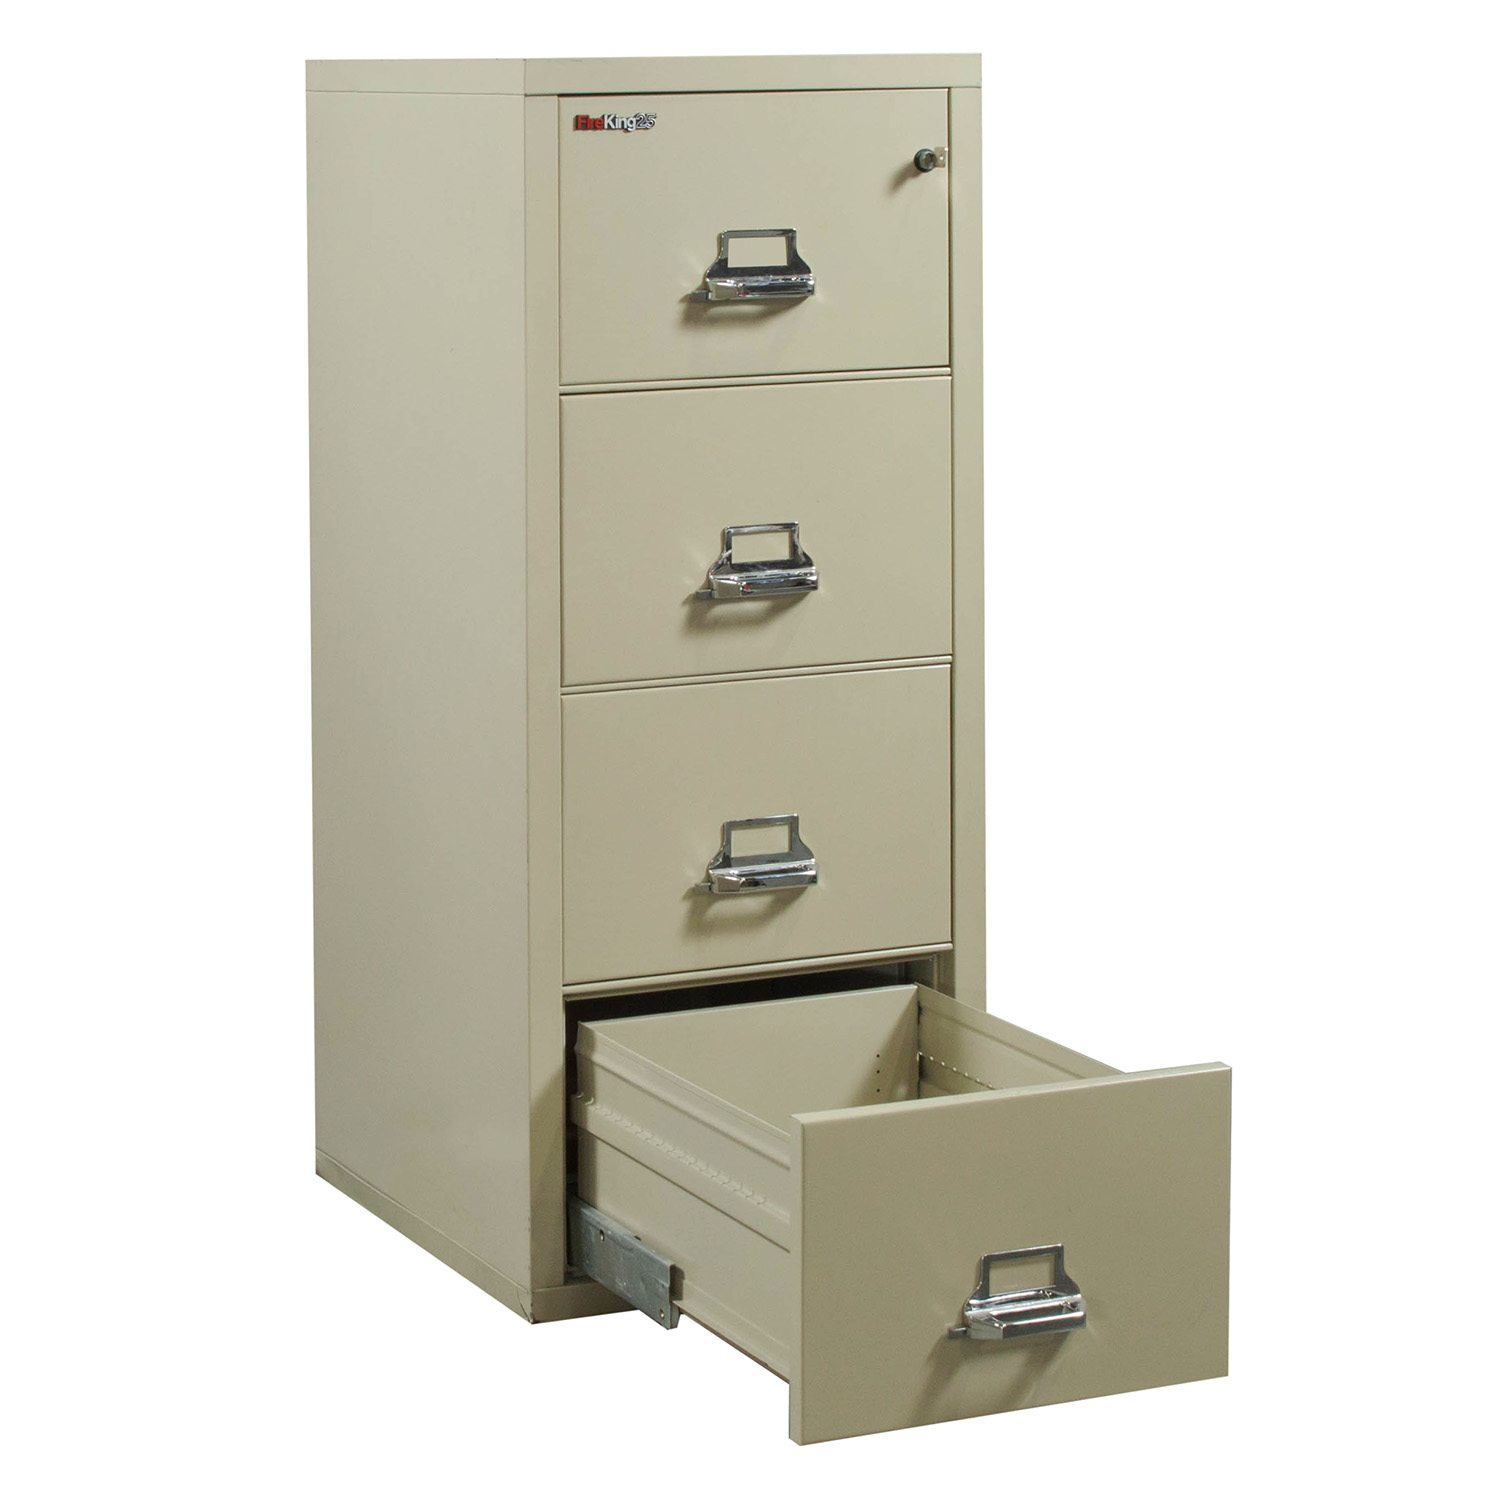 FireKing 25 Used Legal 4 Drawer Vertical File Cabinet